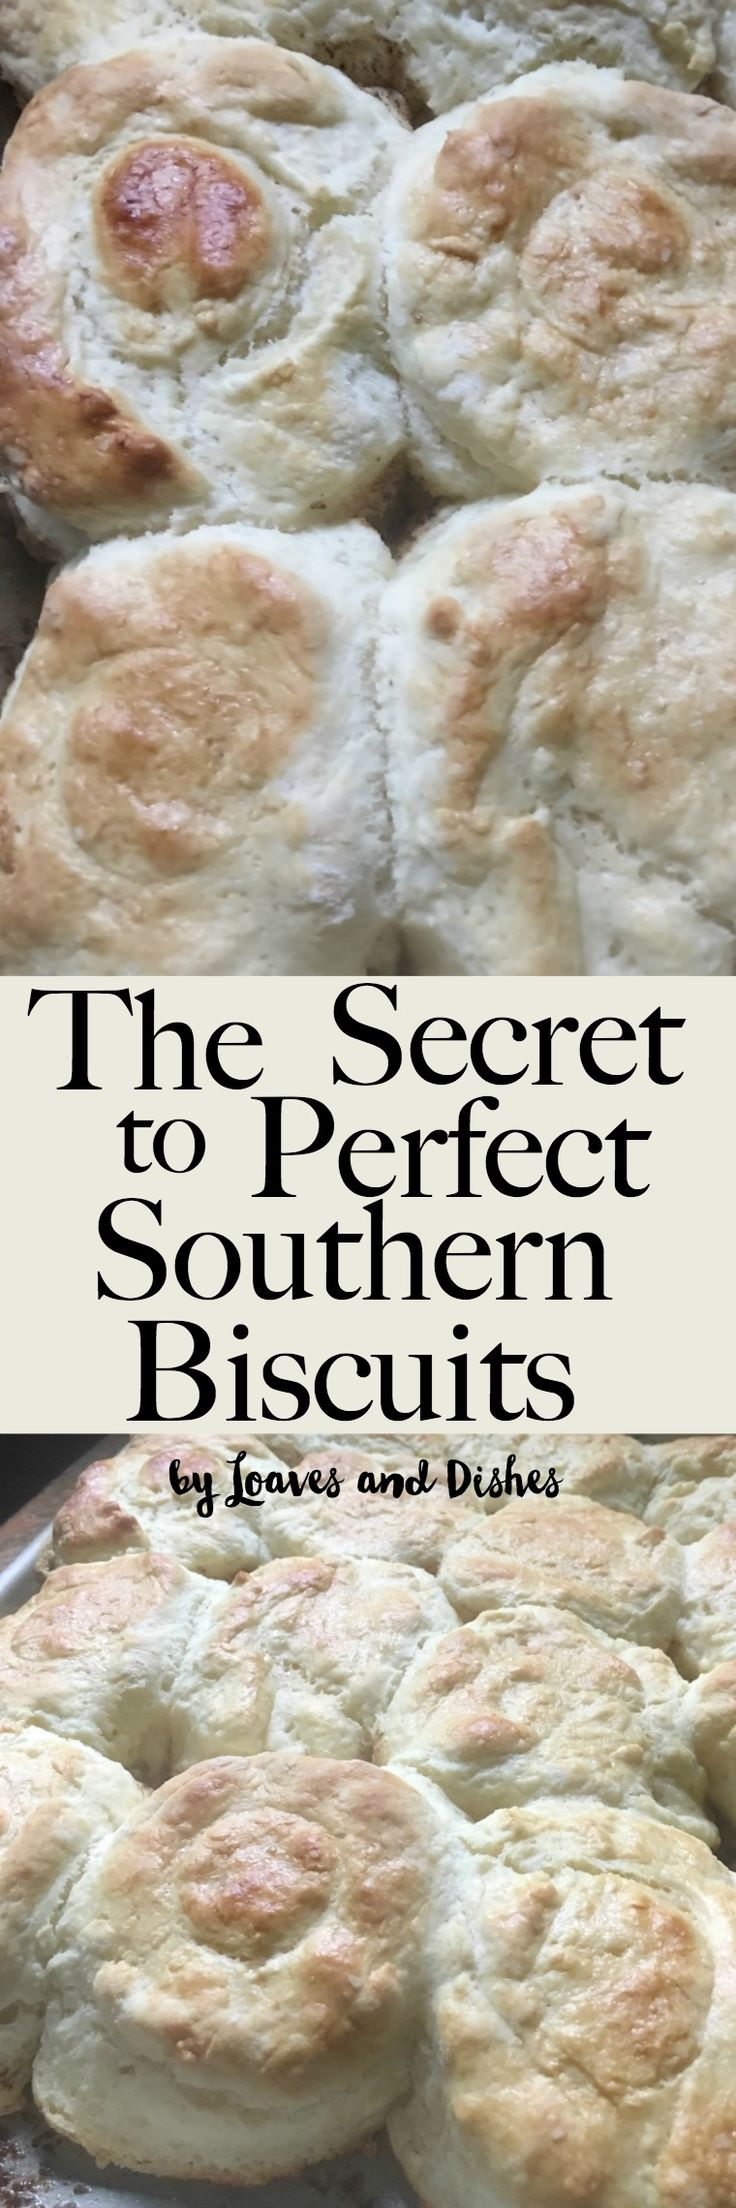 Homemade Easy Southern Biscuits made with buttermilk.  Like the Pioneer Woman or Paula Deen might make. This is the best recipe and uses self rising flour so it is all in there.  All of the steps revealed with photos and explanation. via @loavesanddishes